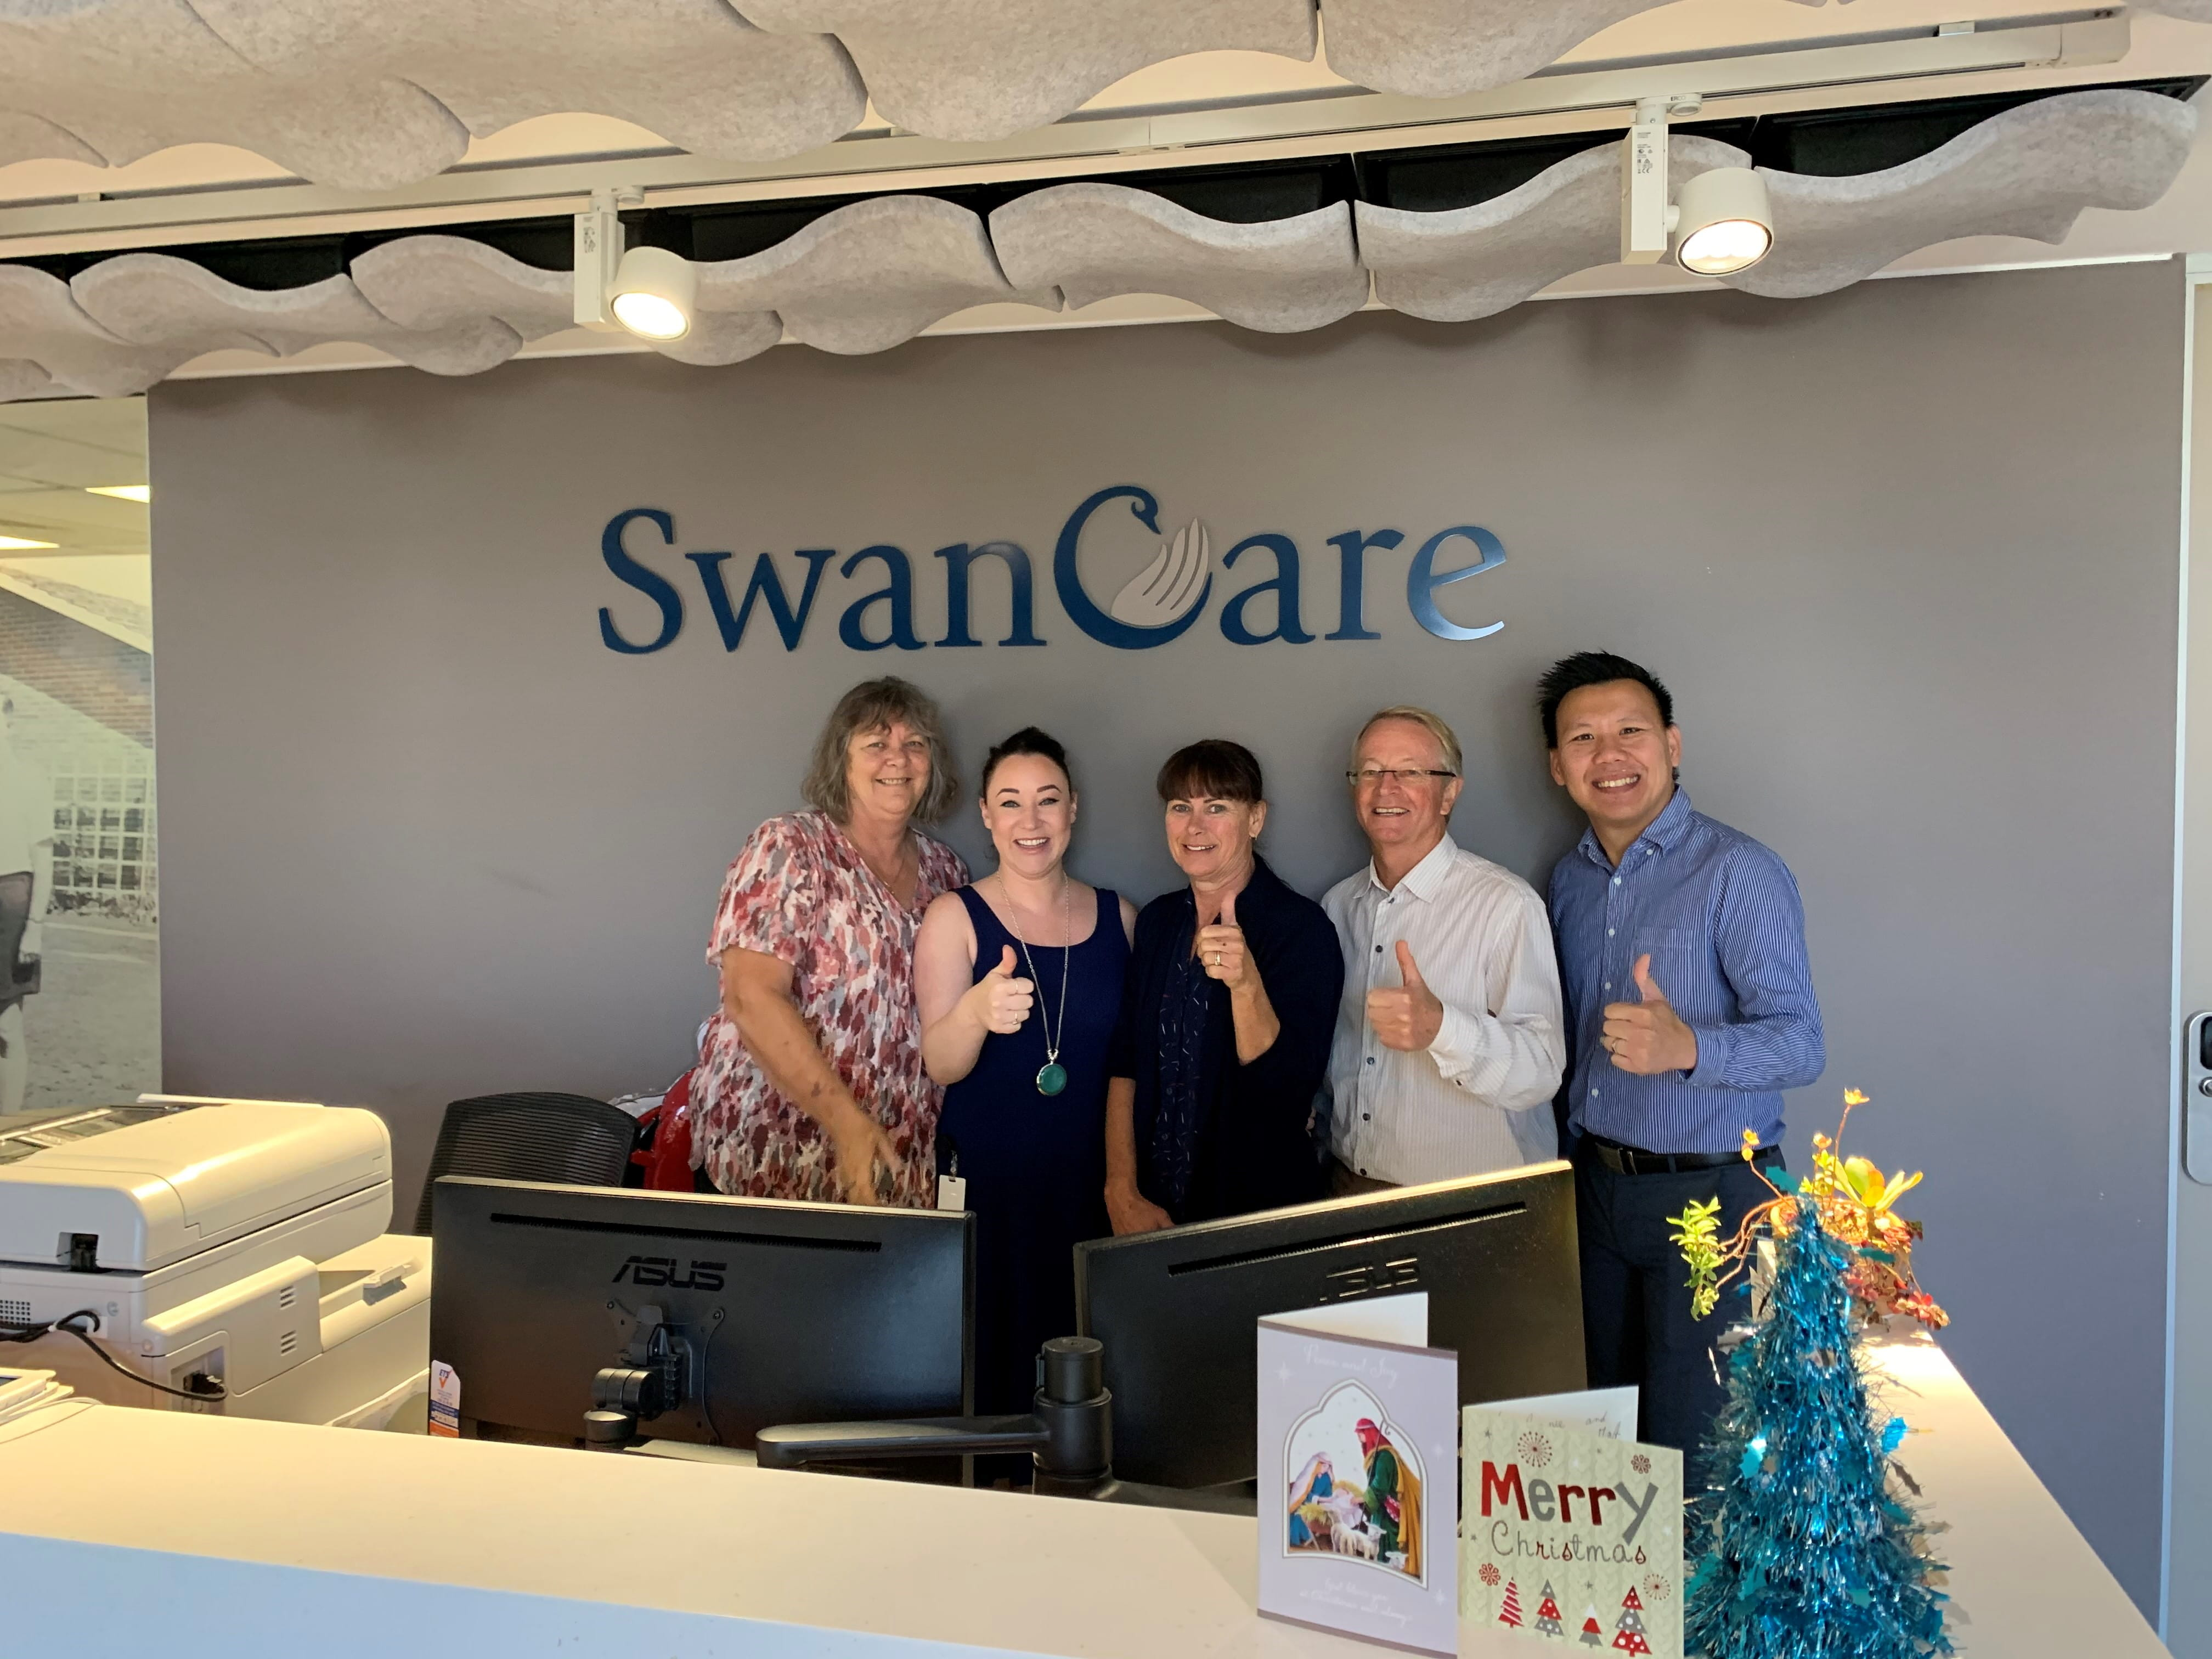 Swan Care team giving the thumbs up beneath their sign